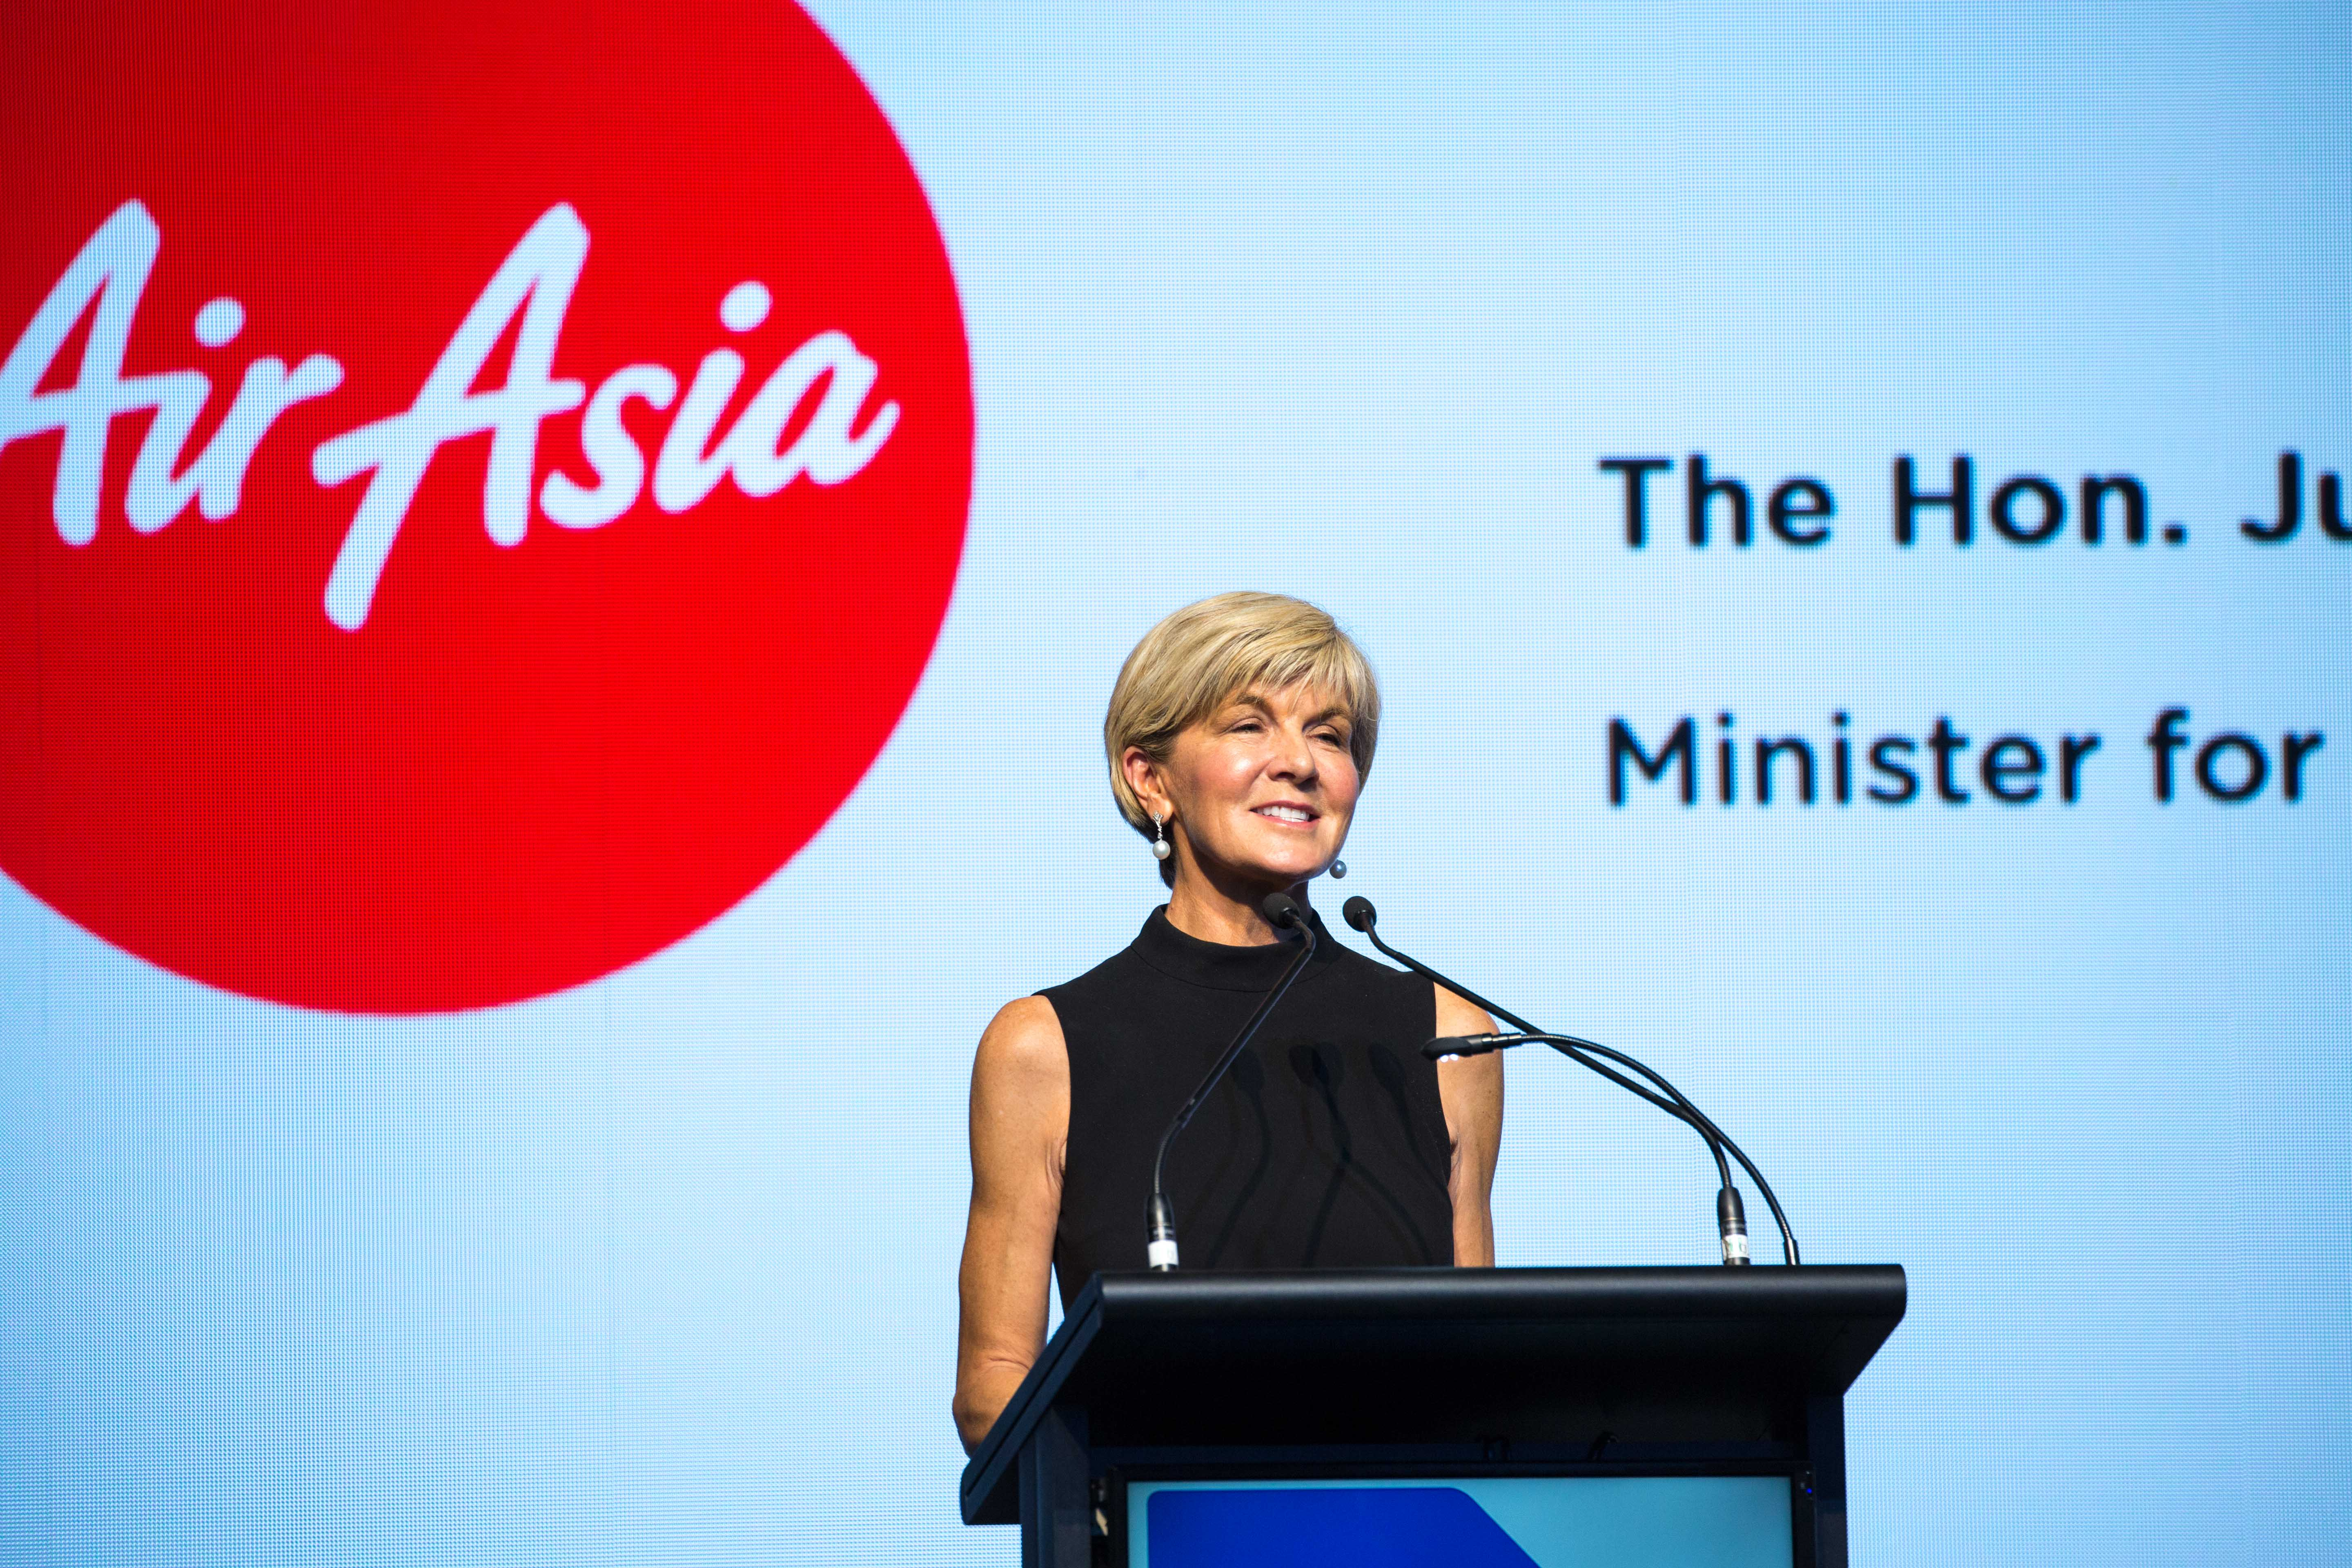 The Hon. Julie Bishop MP